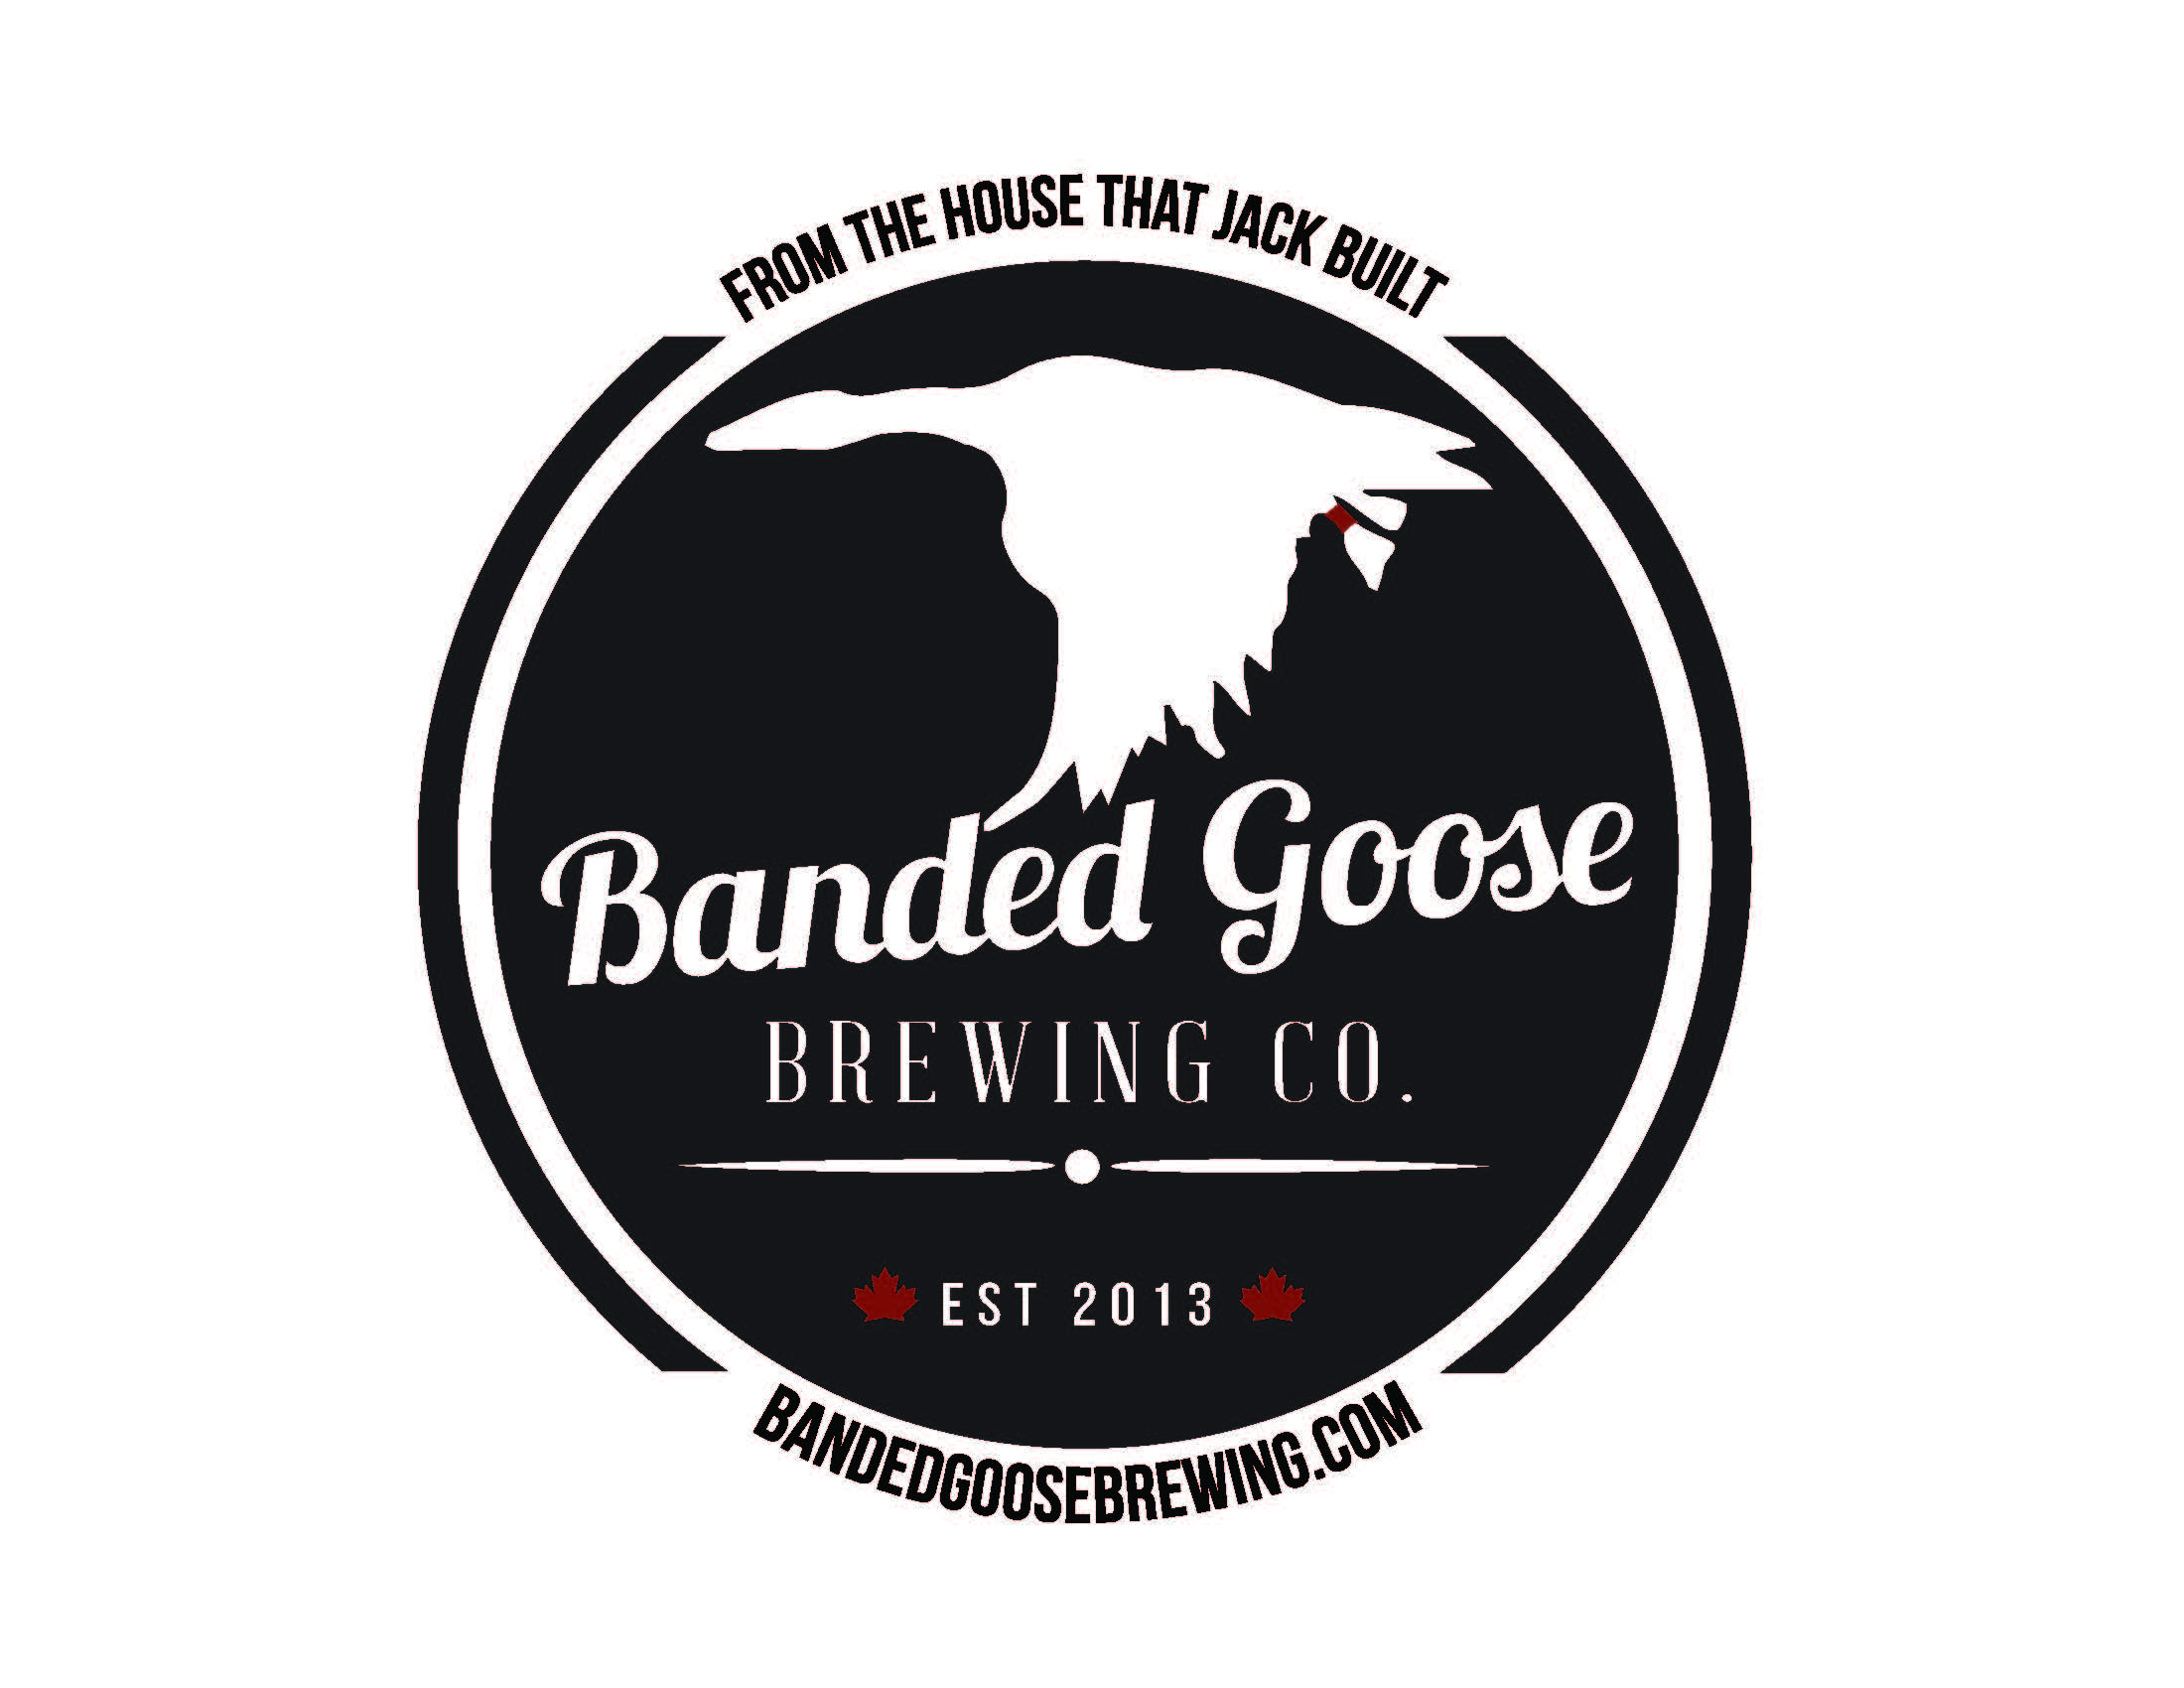 The Banded Goose Brewing Company logo